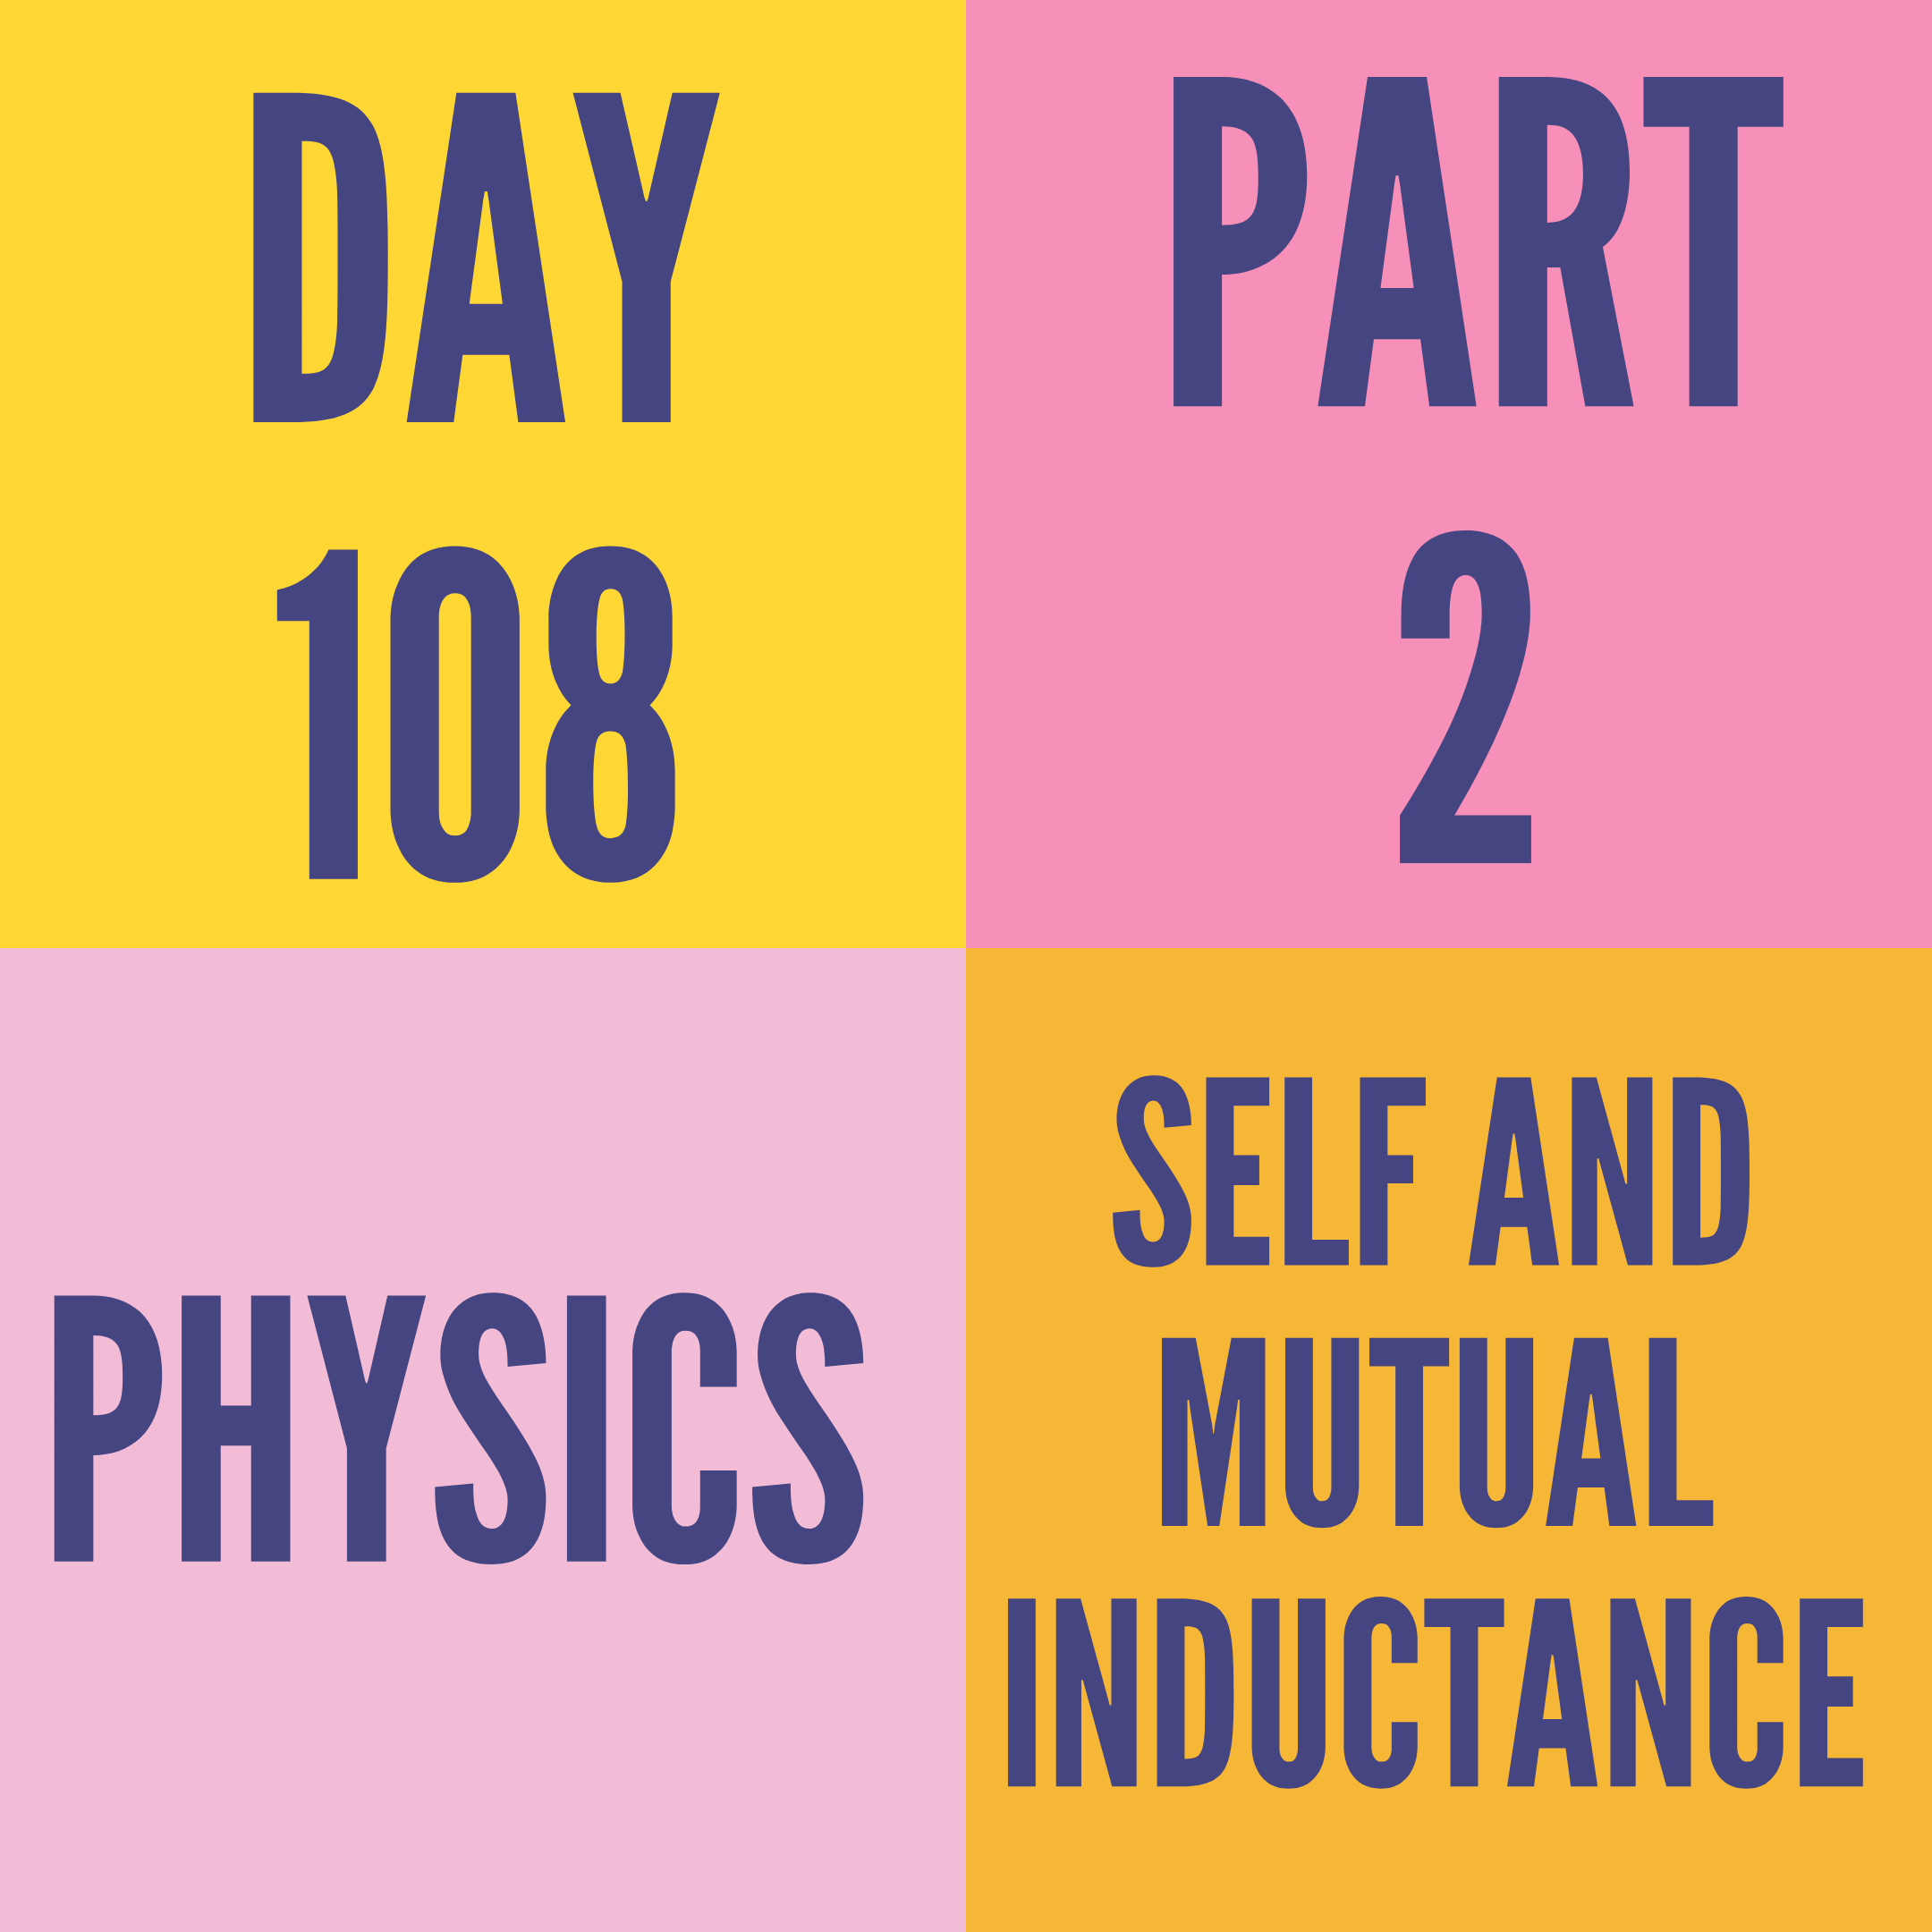 DAY-108 PART-2 SELF AND MUTUAL INDUCTANCE